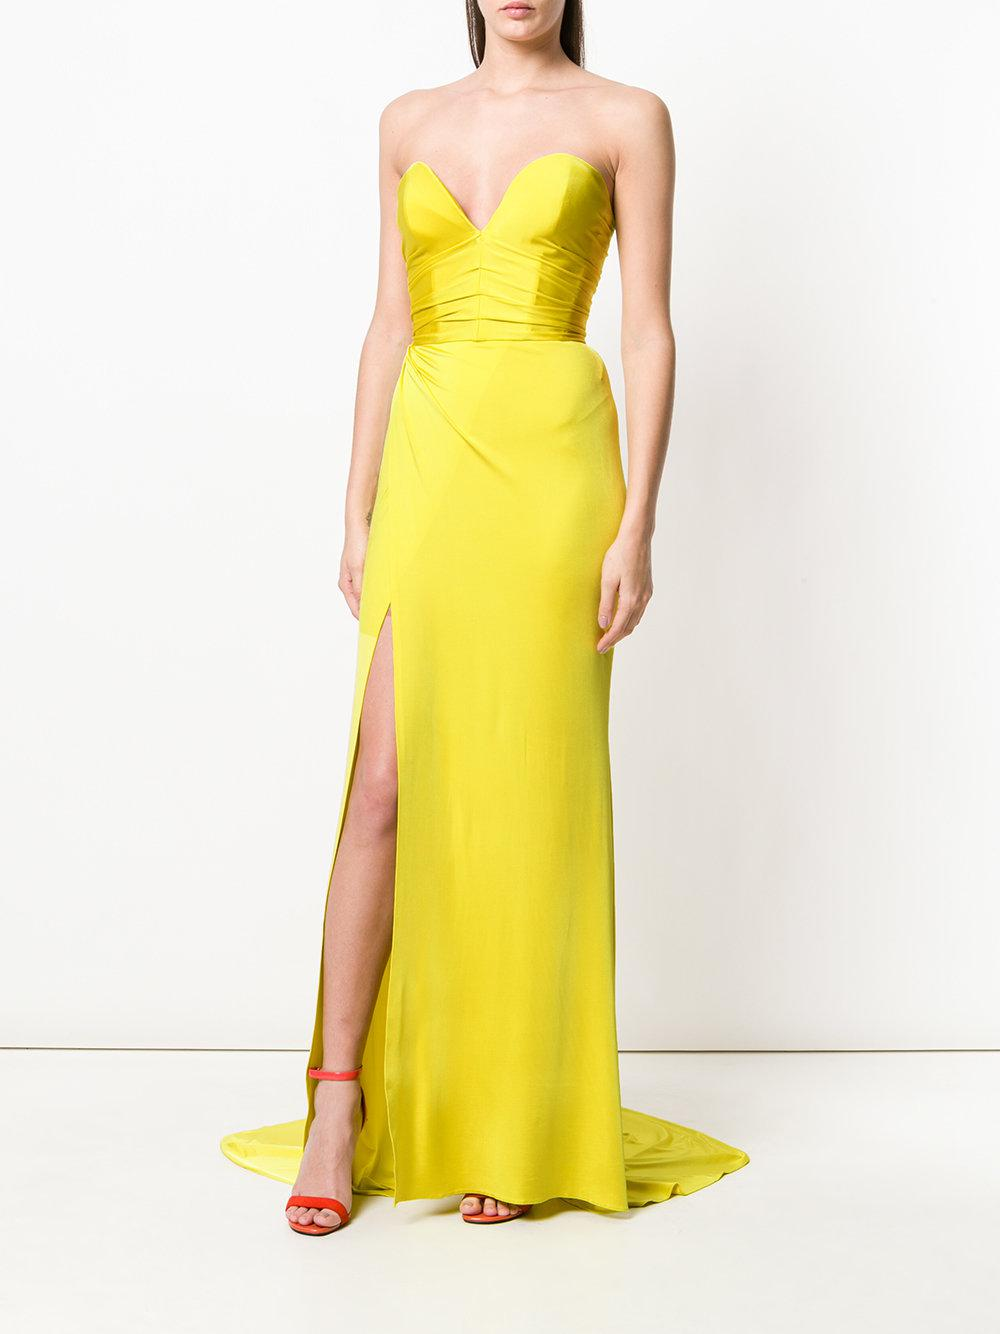 Alexandre Vauthier Synthetic Strapless Slit Front Gown in Yellow & Orange (Yellow)